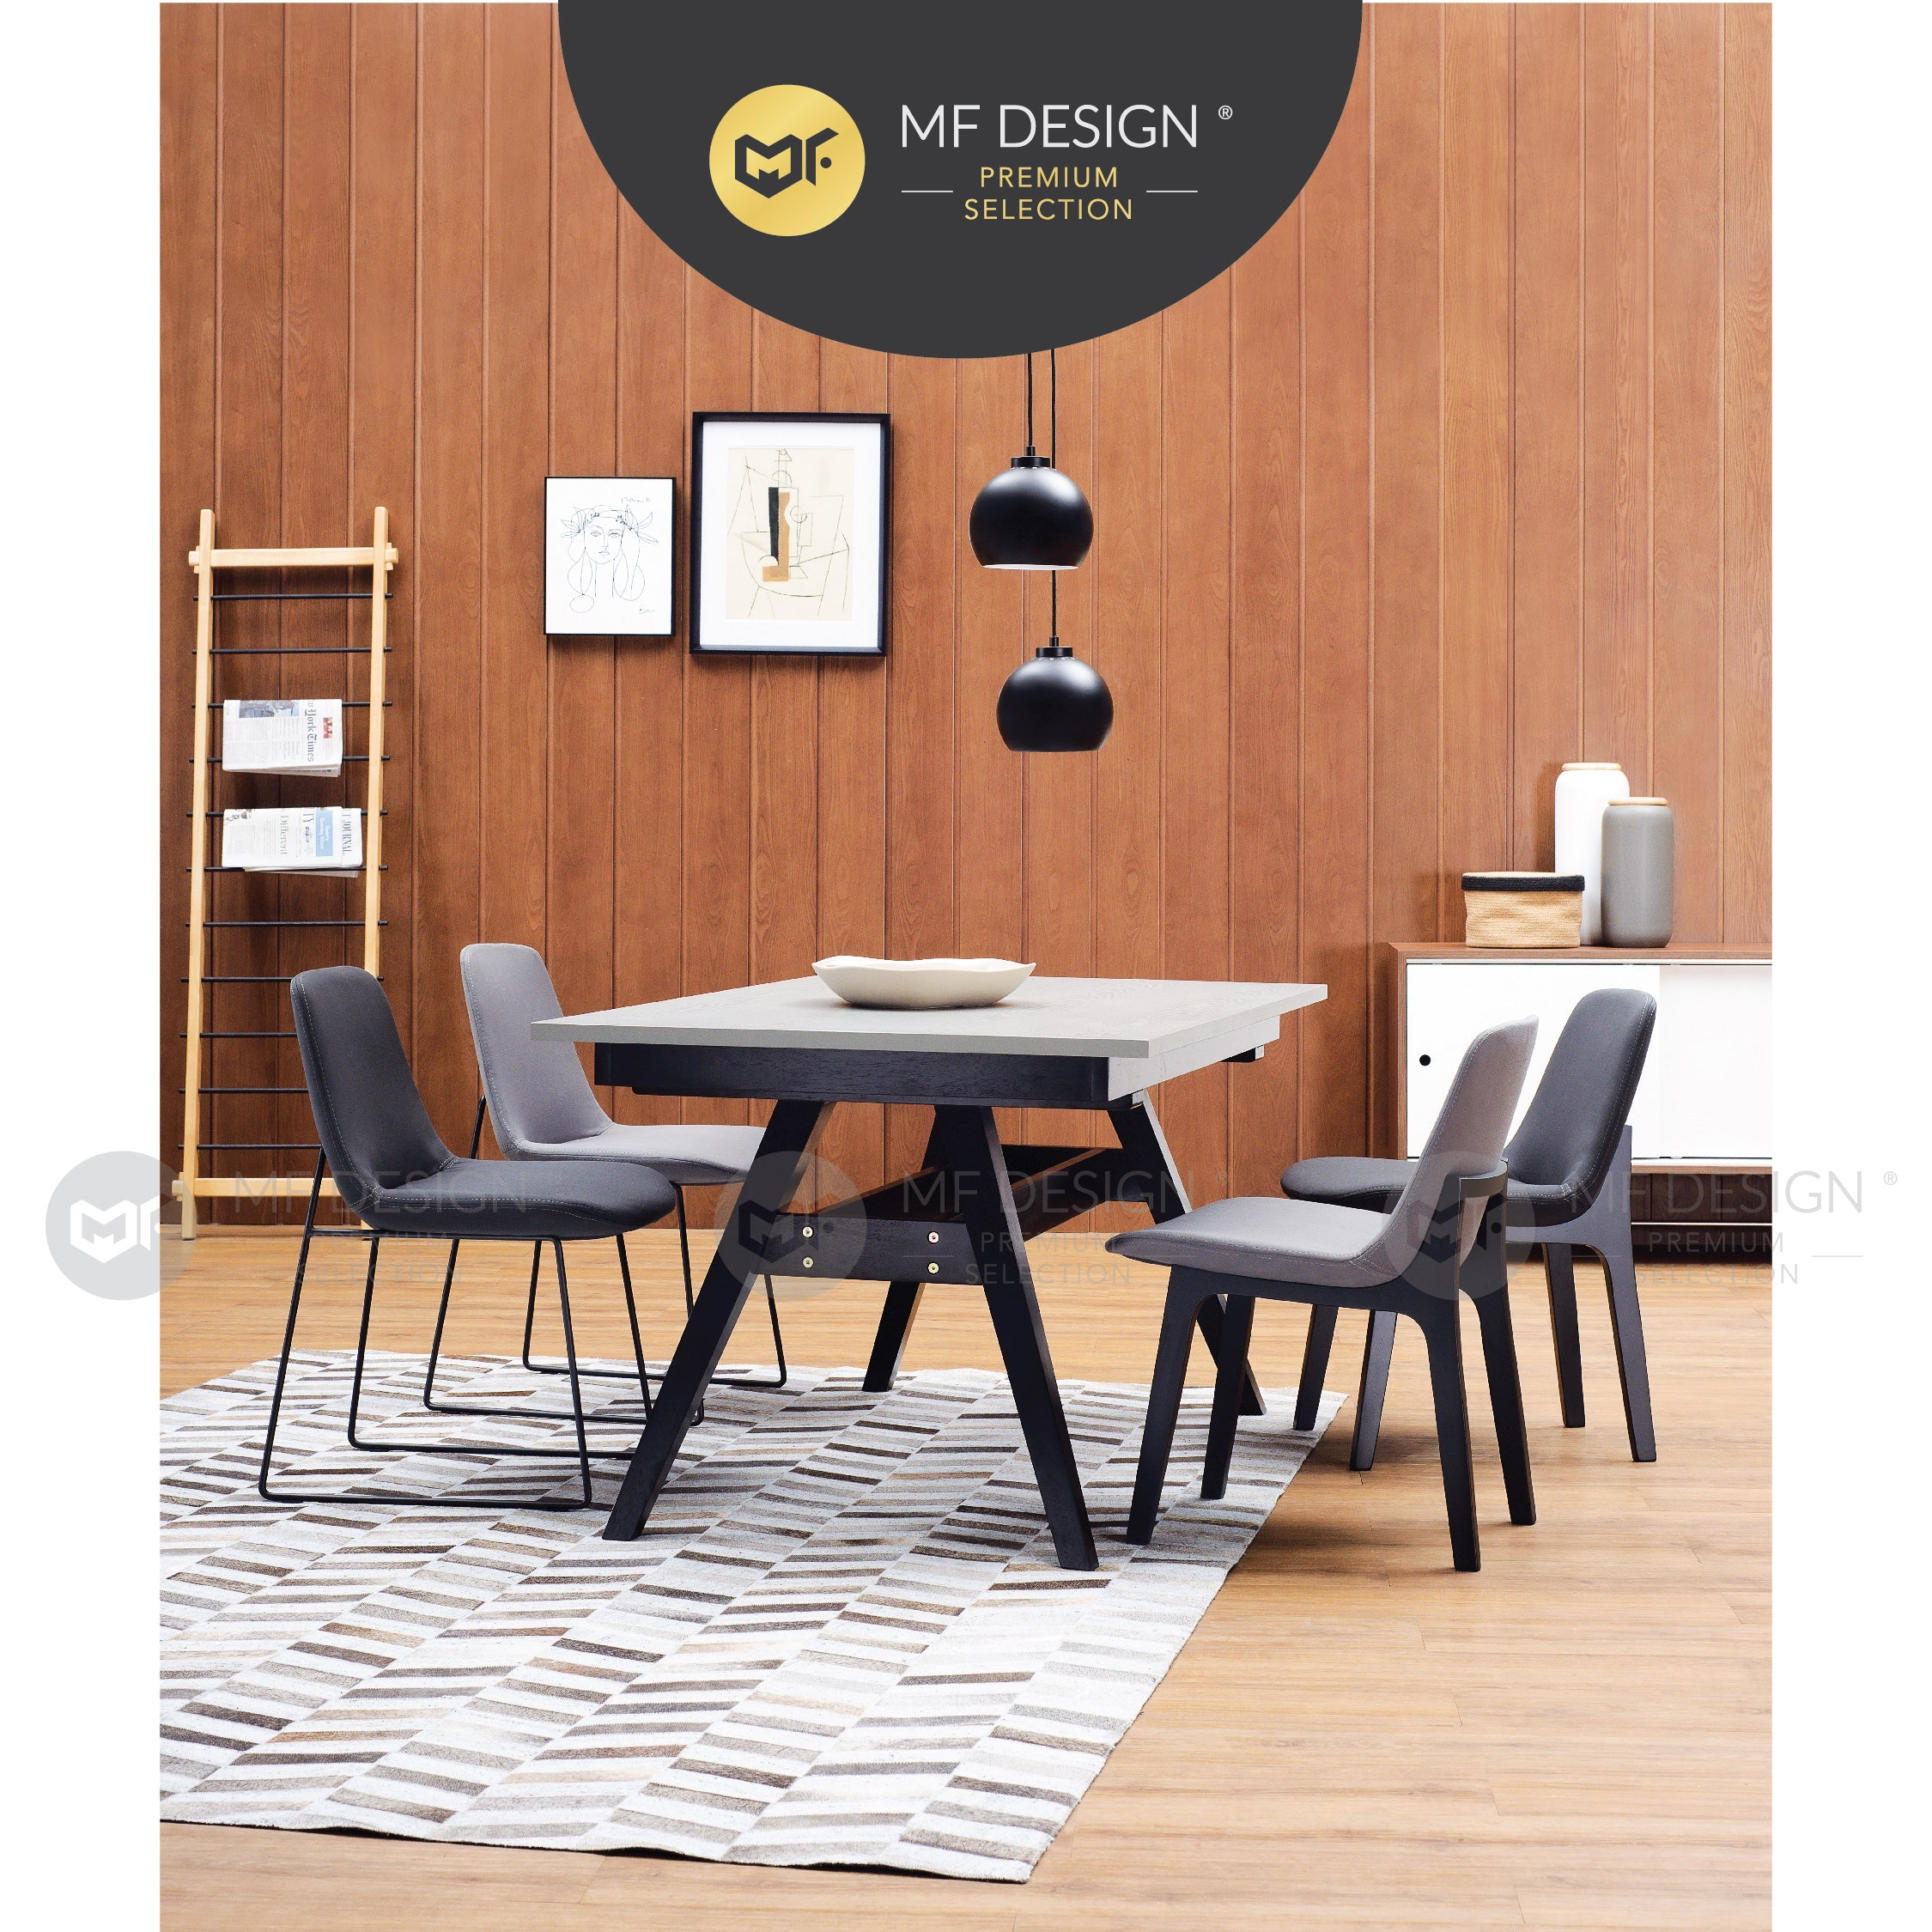 MFD Premium Aiman Dining Chair (Metal) / kerusi / chair